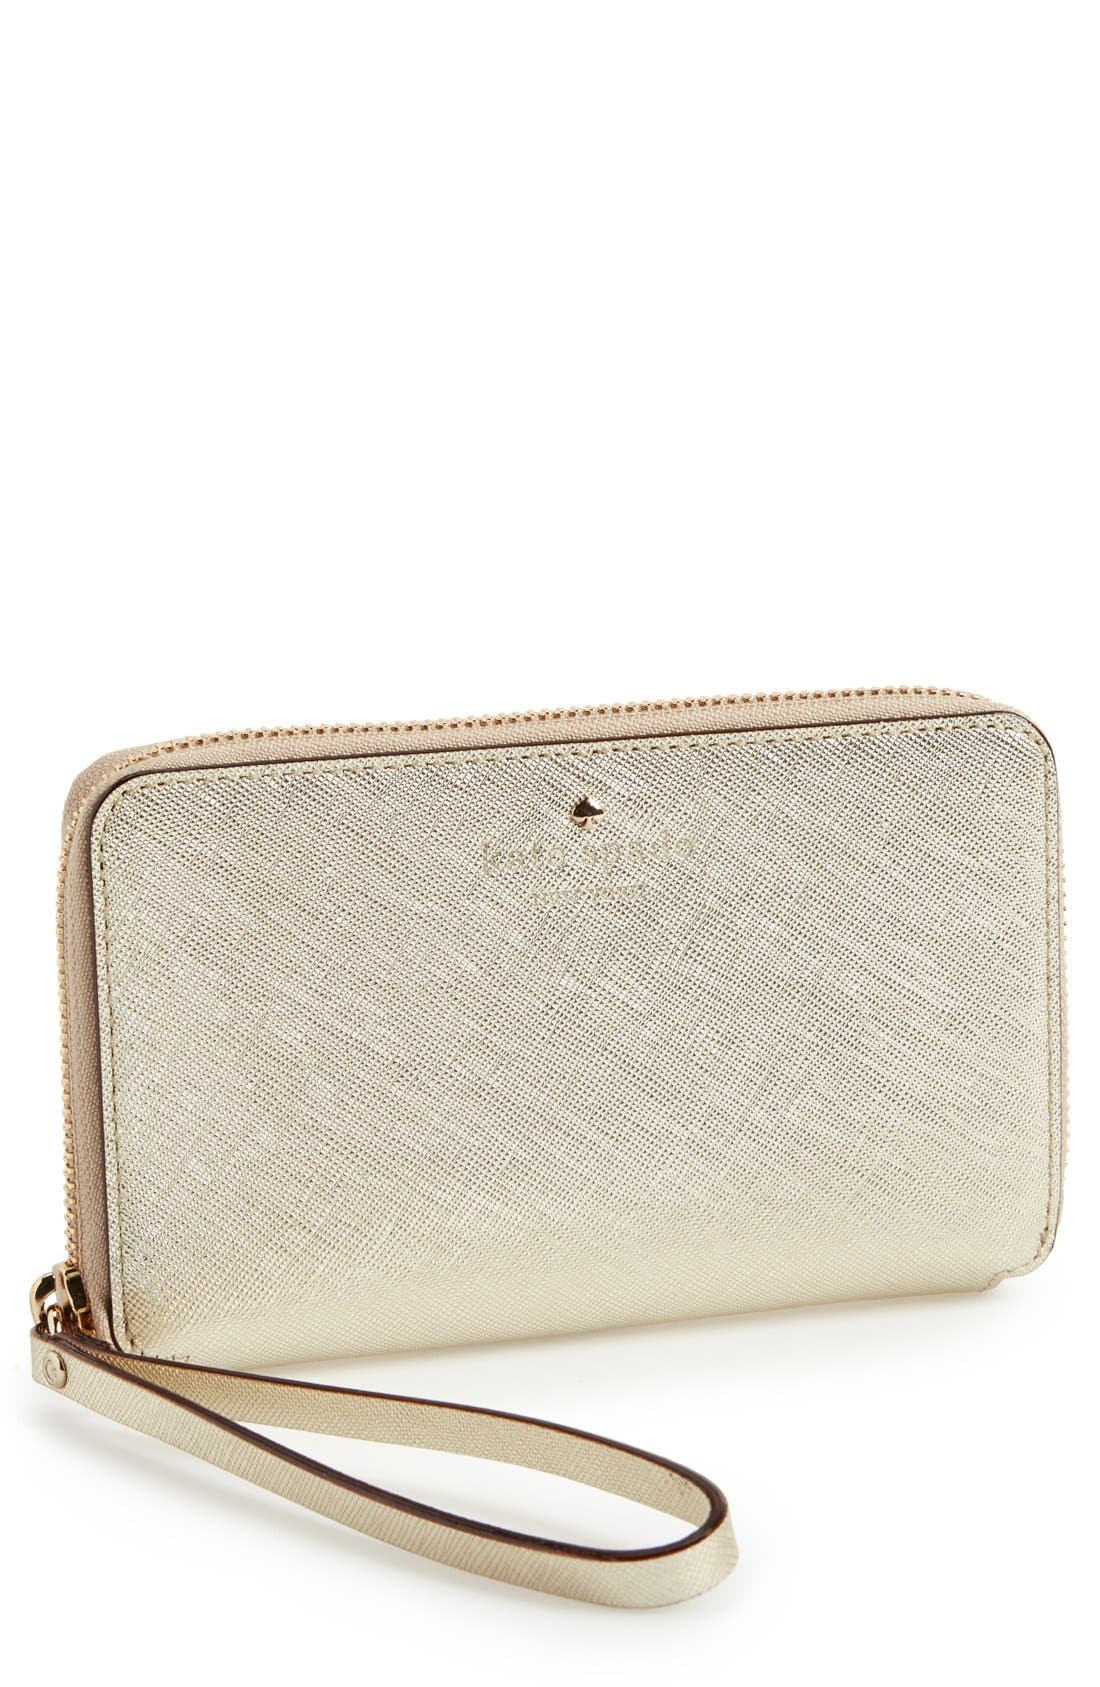 Alternate Image 1 Selected - kate spade new york 'cherry lane - laurie' wallet